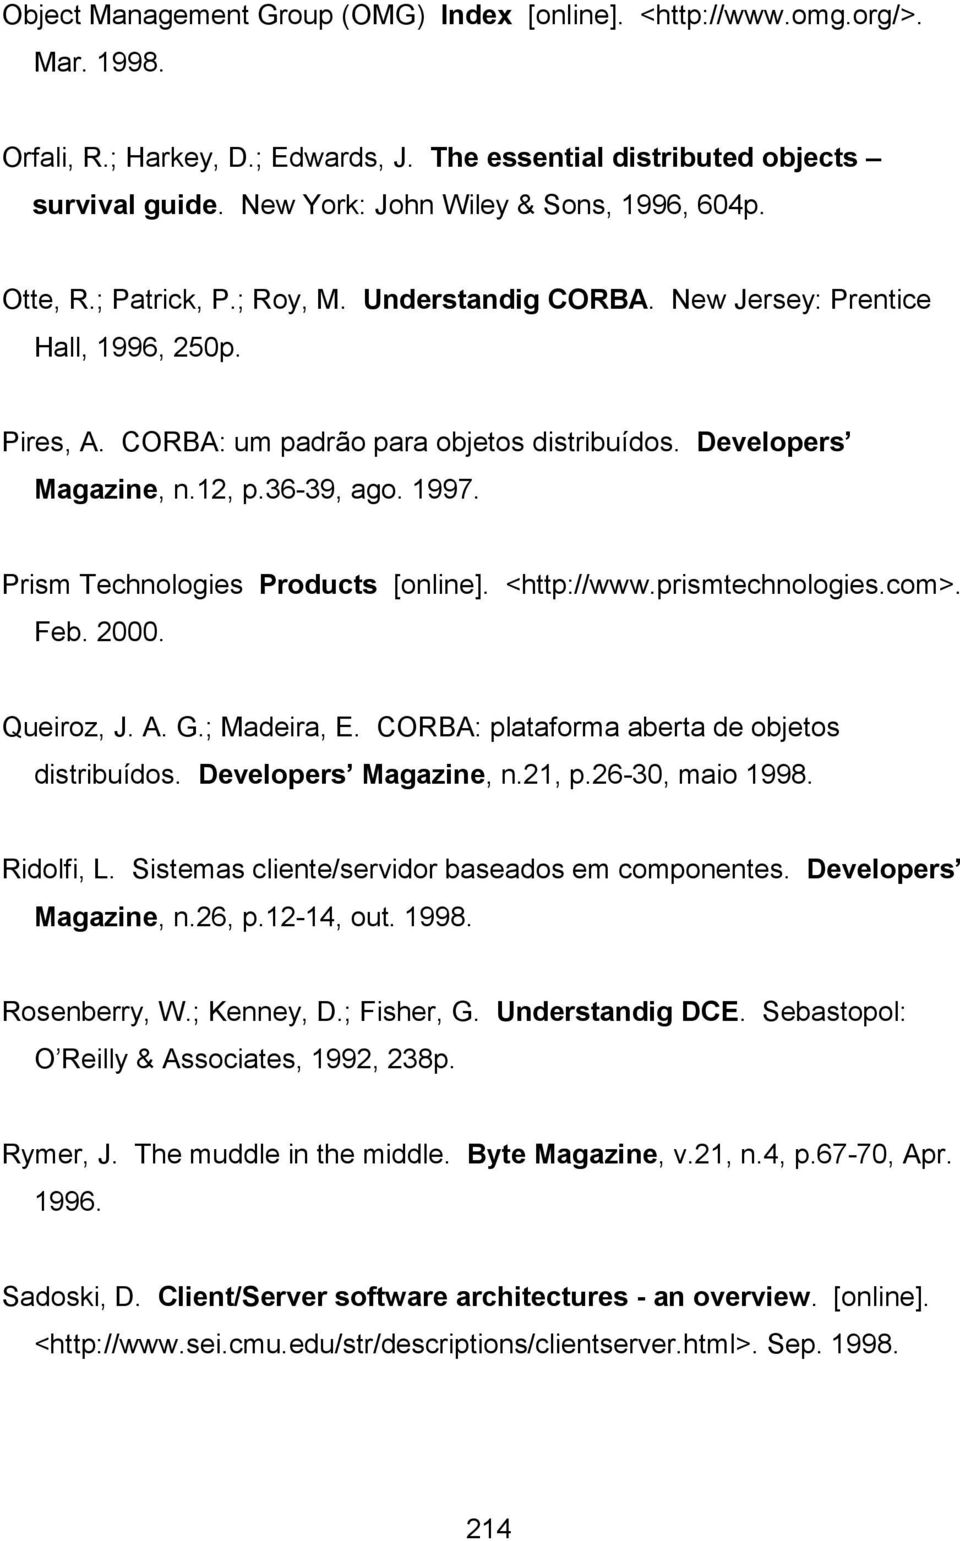 Developers Magazine, n.12, p.36-39, ago. 1997. Prism Technologies Products [online]. <http://www.prismtechnologies.com>. Feb. 2000. Queiroz, J. A. G.; Madeira, E.